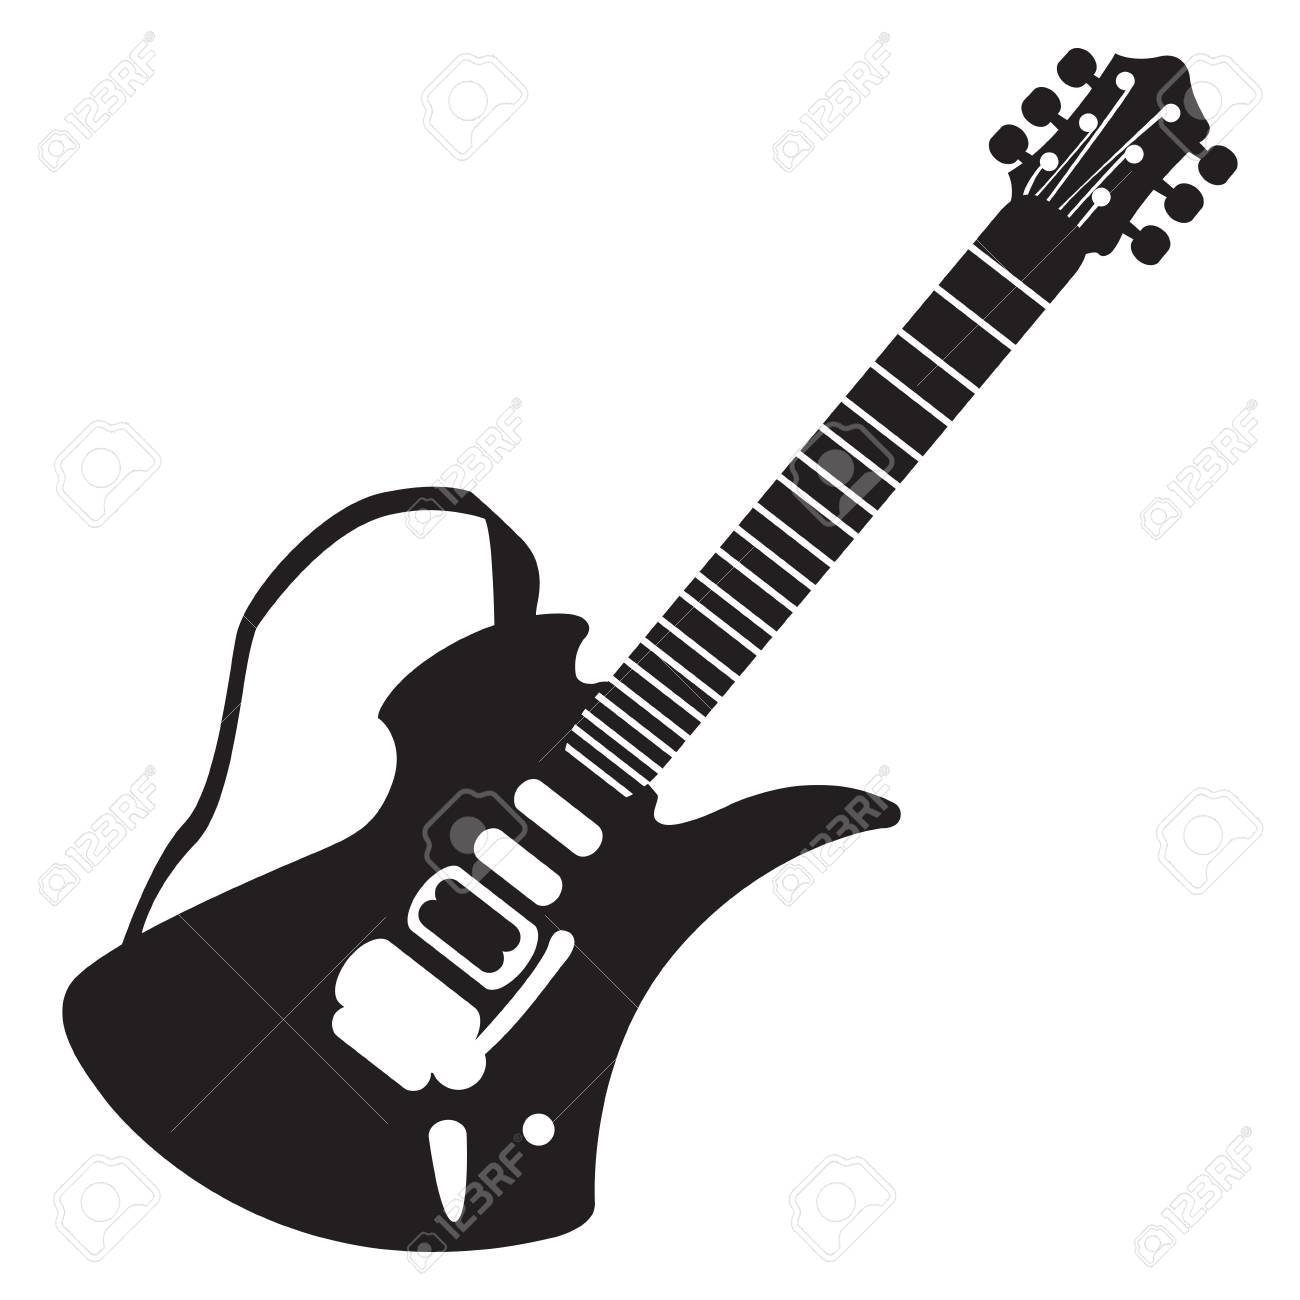 isolated silhouette of an electric guitar vector illustration rh 123rf com electric guitar silhouette vector free electric guitar vector outline